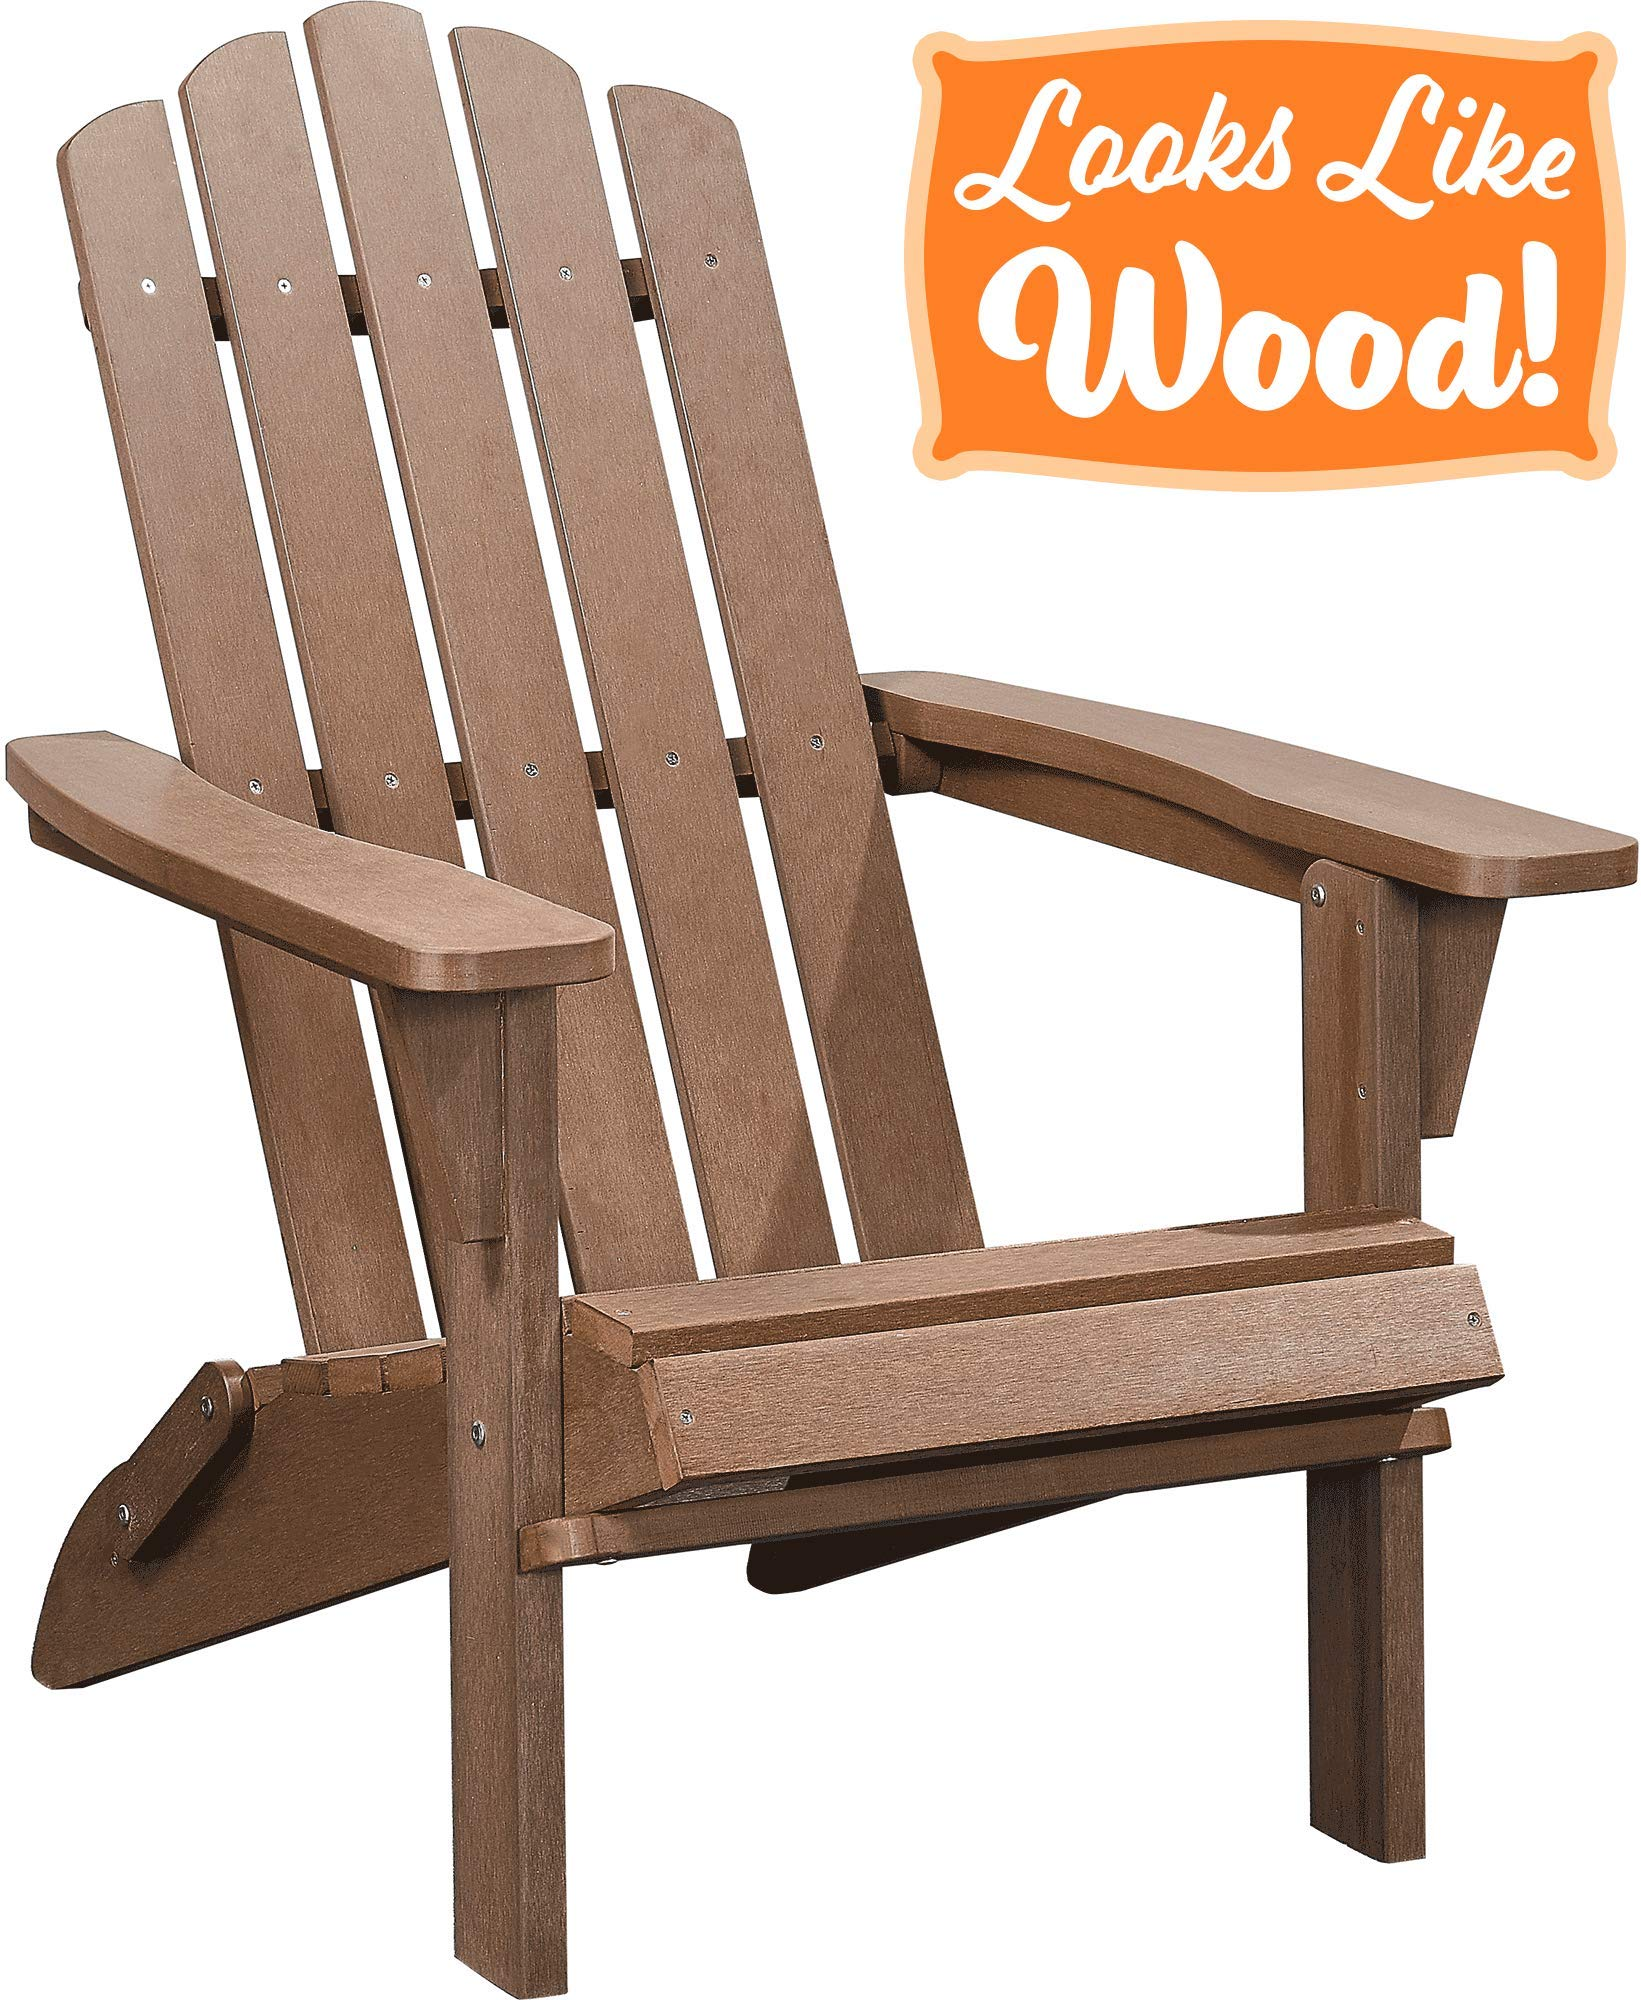 PolyTEAK Classic Folding Poly Adirondack Chair, Walnut Brown   Adult-Size, Weather Resistant, Made from Plastic by PolyTEAK